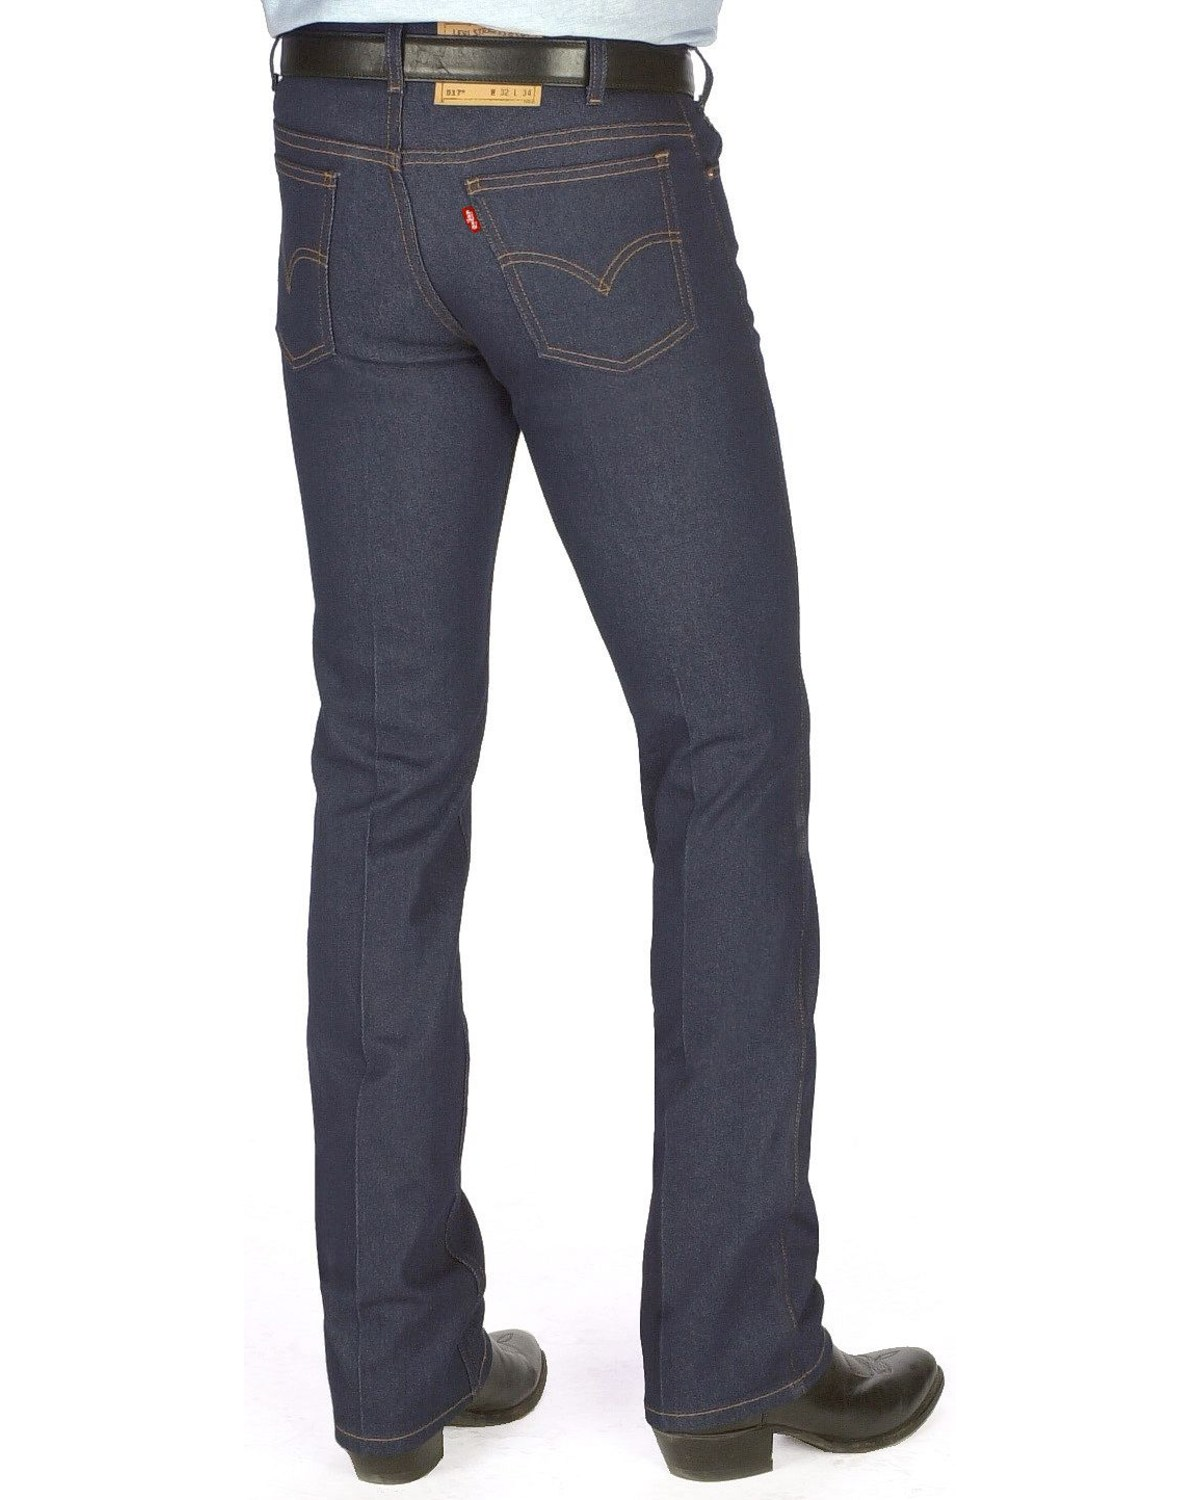 7dfa85254a5 Zoomed Image Levi's Men's 517® Boot Cut Jeans, Indigo, ...